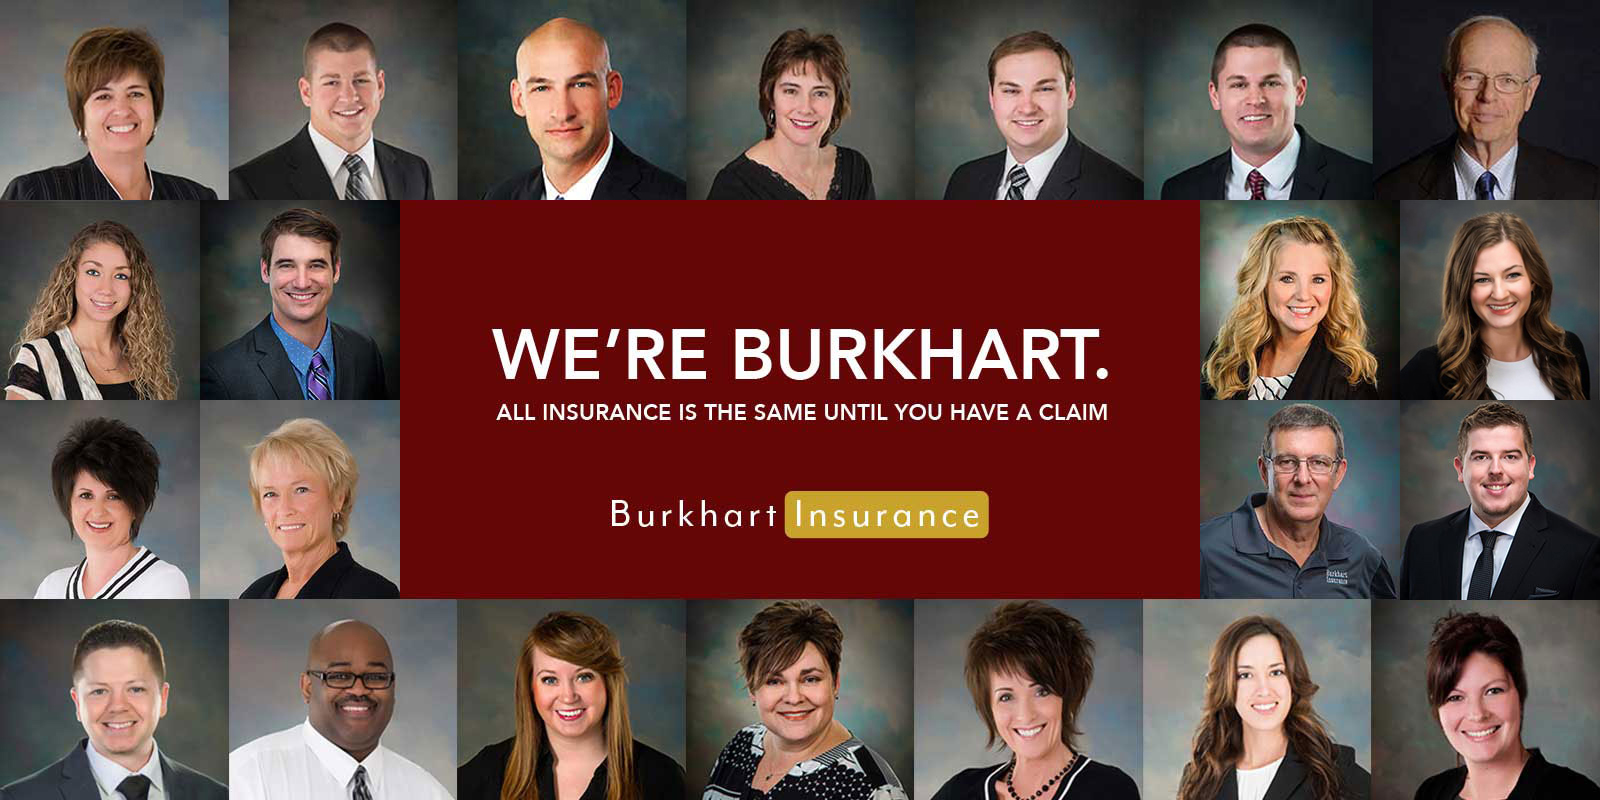 We're Burkhart. All Insurance is the Same Until You Have a Claim.